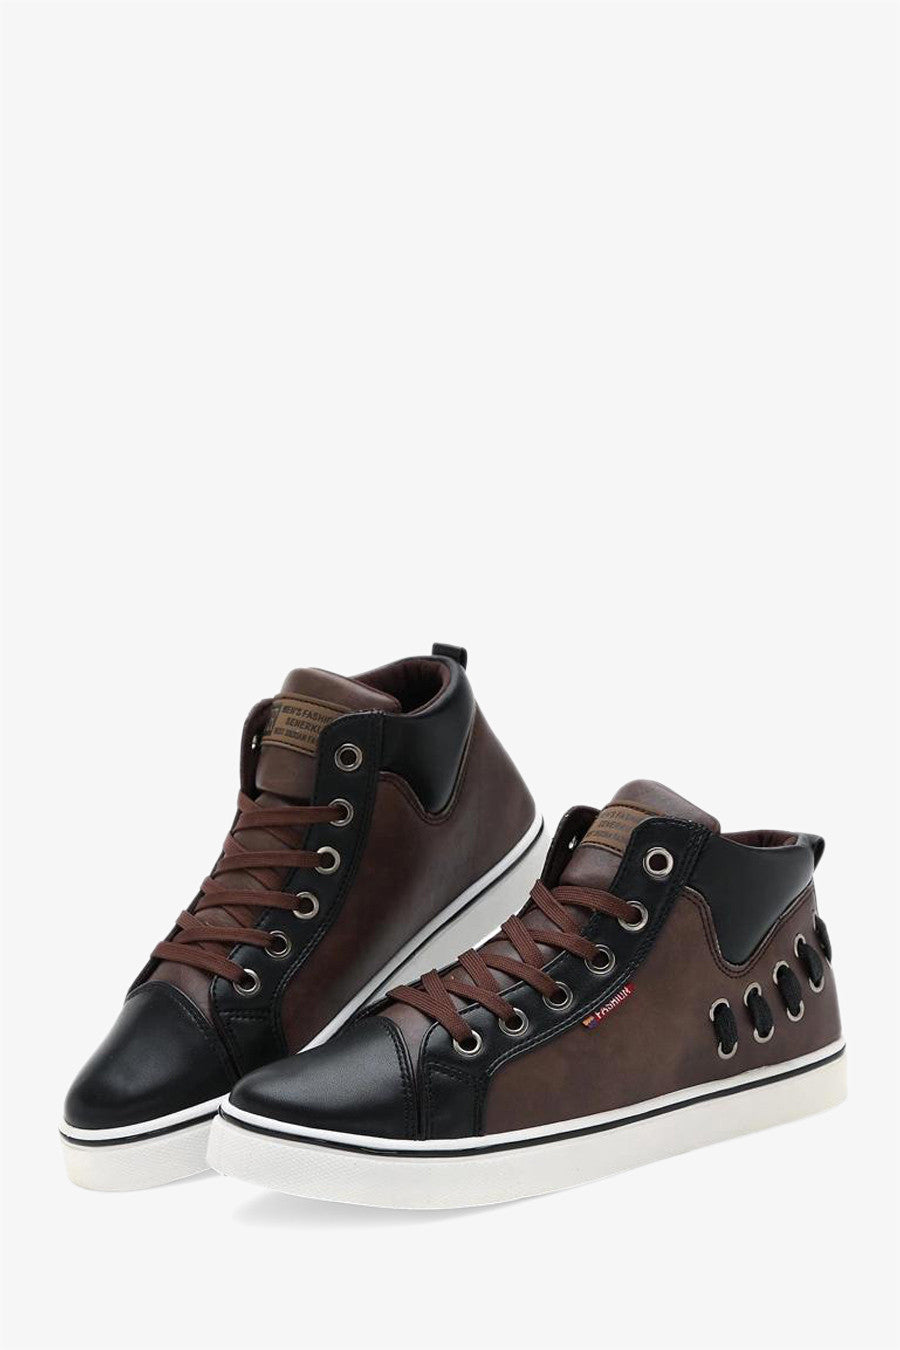 Men's High Top Sneakers In Brown